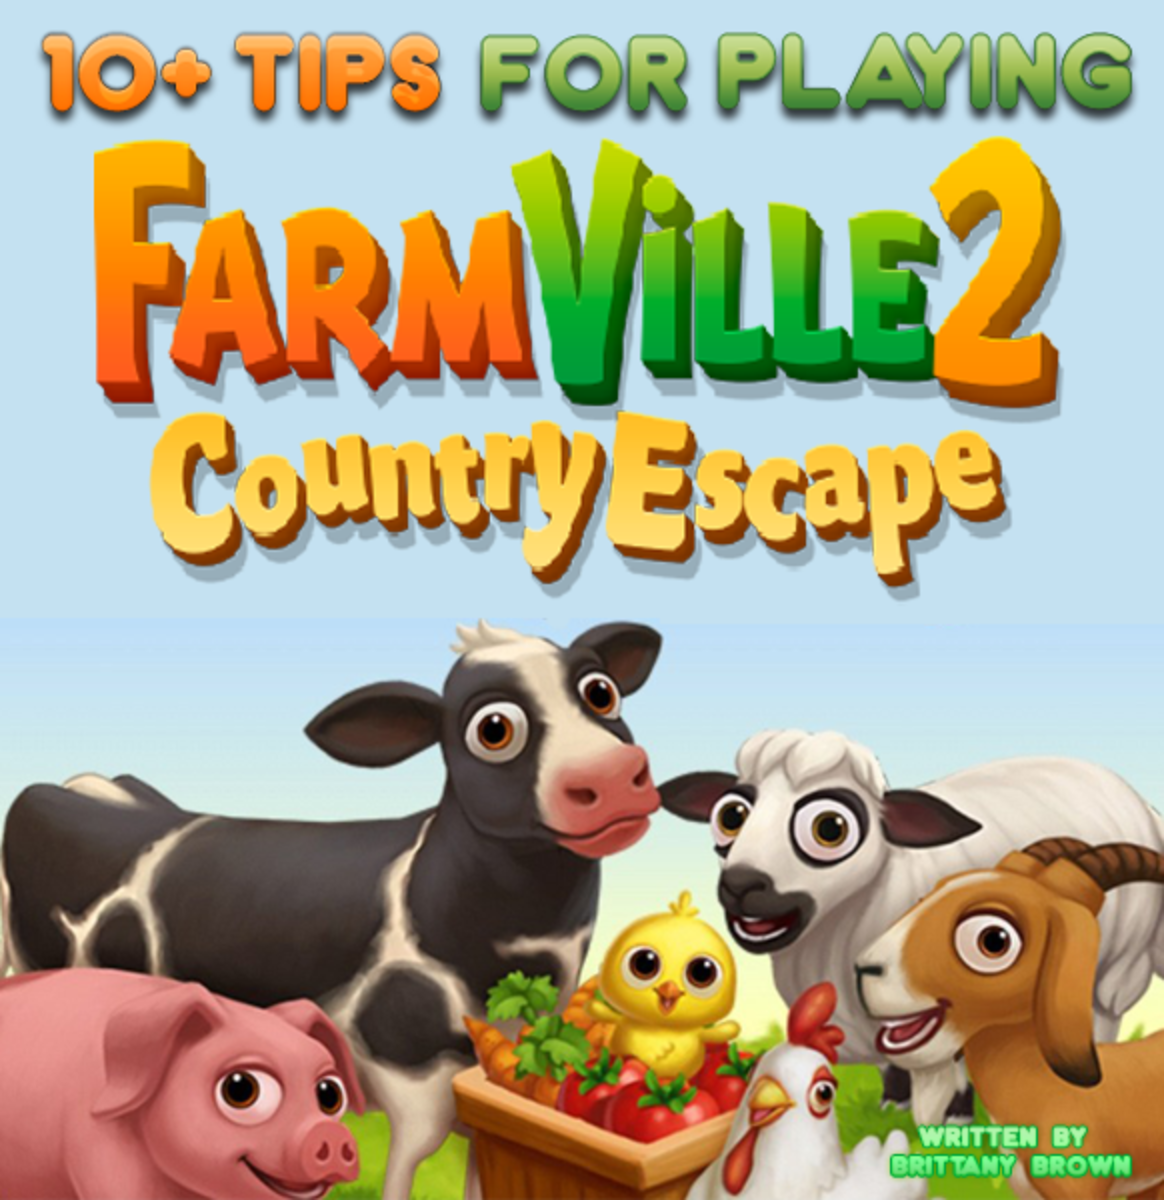 10+ tips, cheats, tricks and hints for playing Farmville 2: Country Escape!